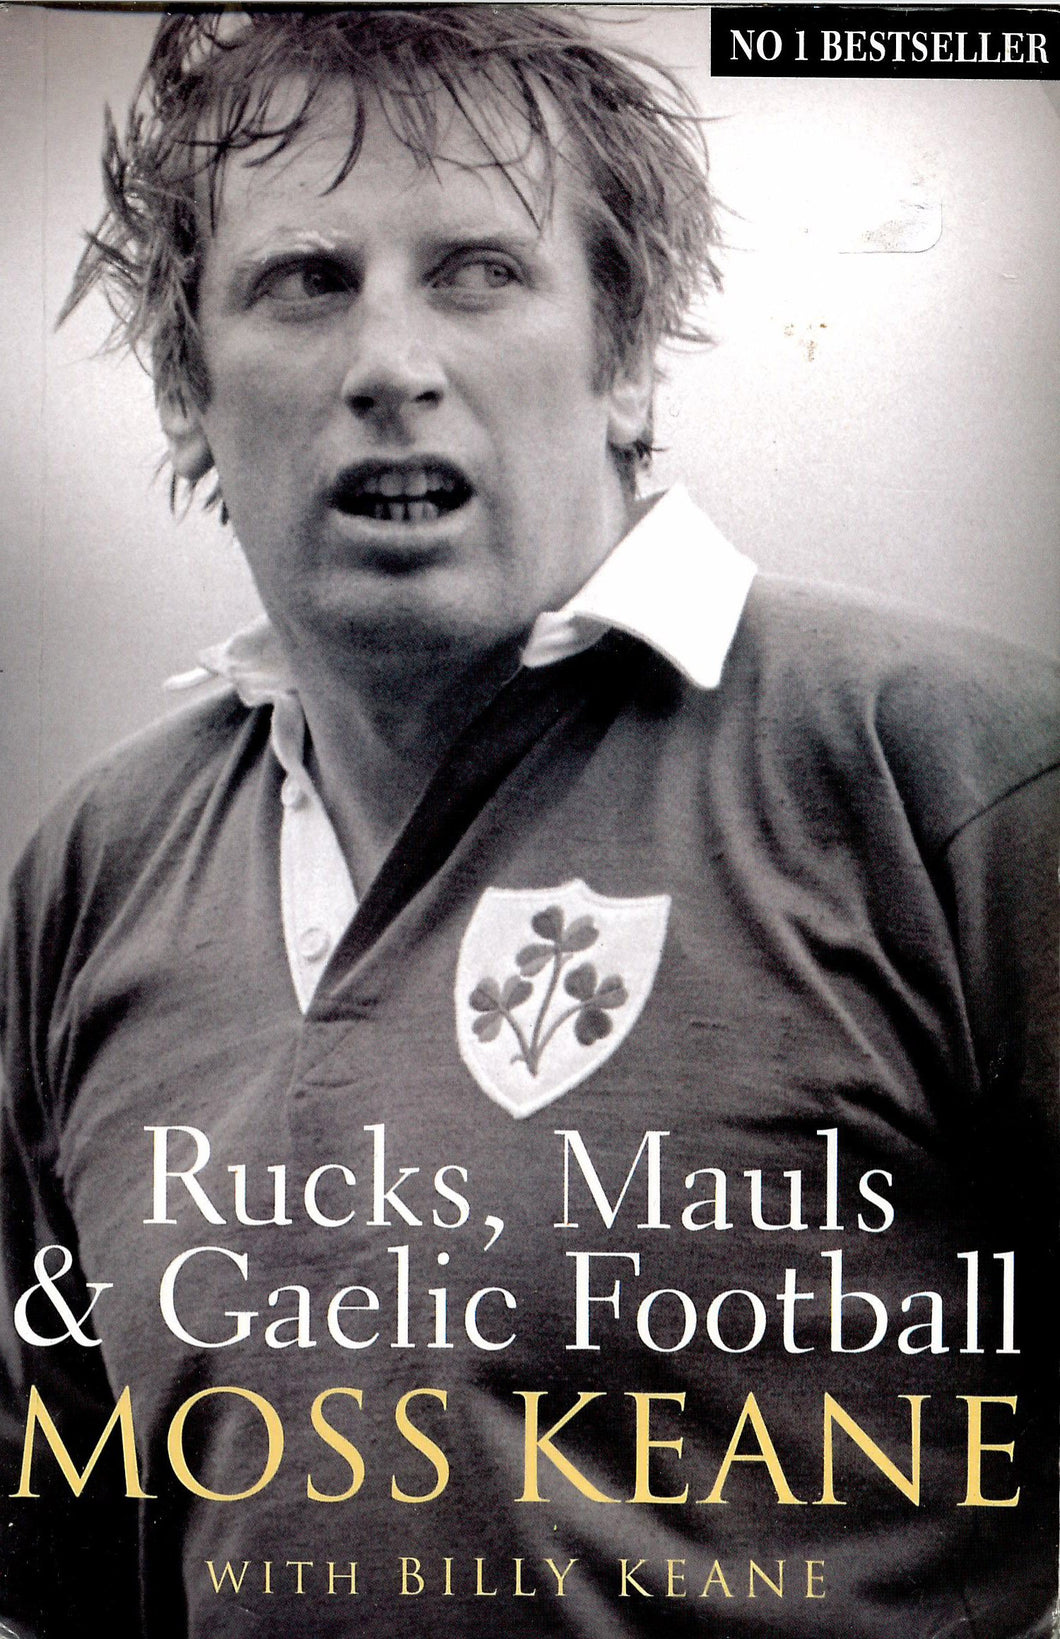 Rucks, Mauls and Gaelic Football